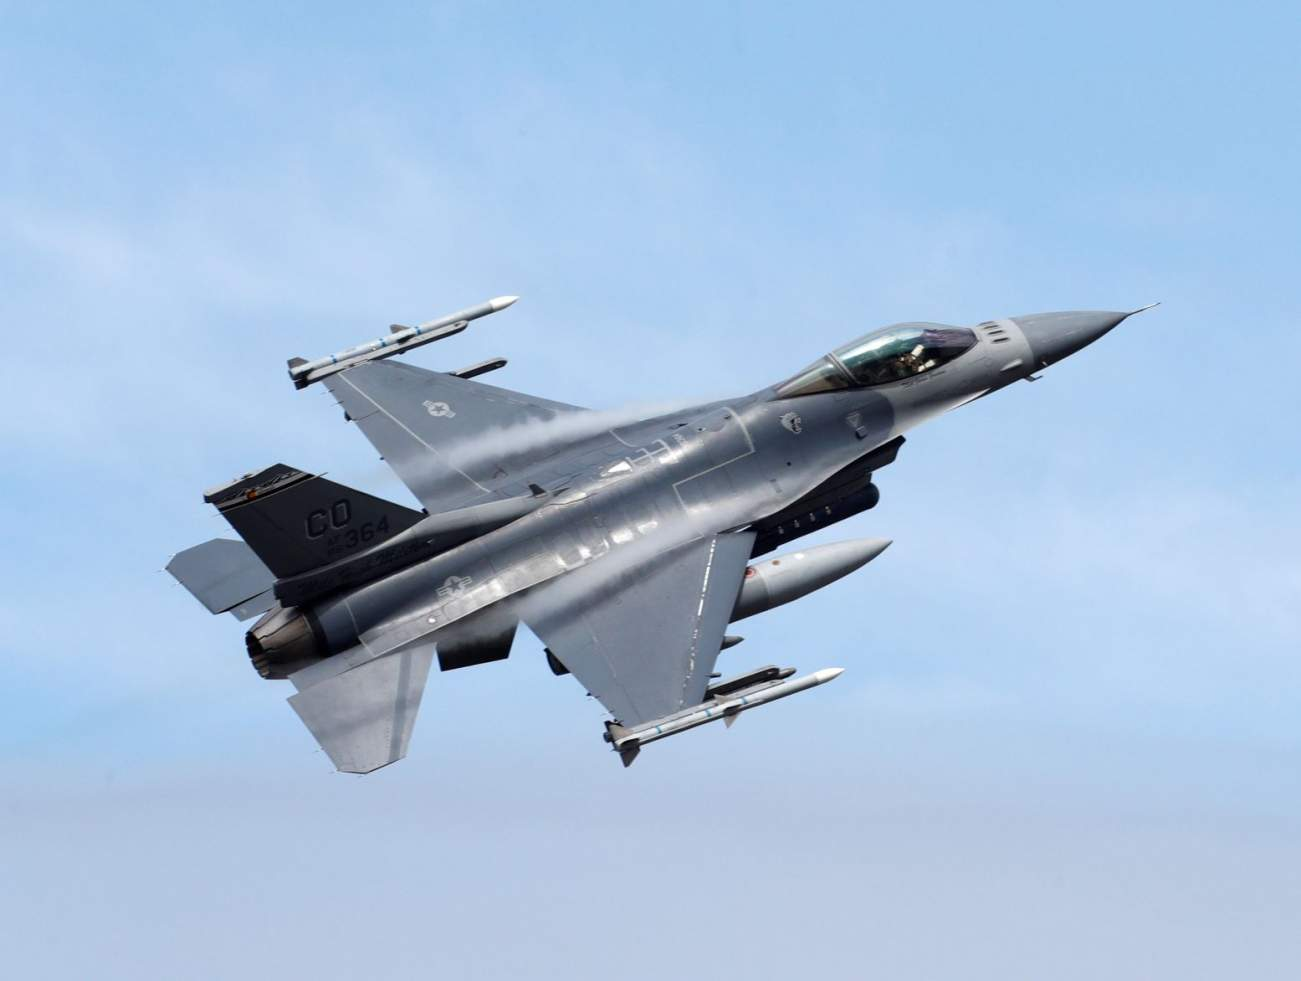 The Aging F-16 Just Got a Stealth Paint Job